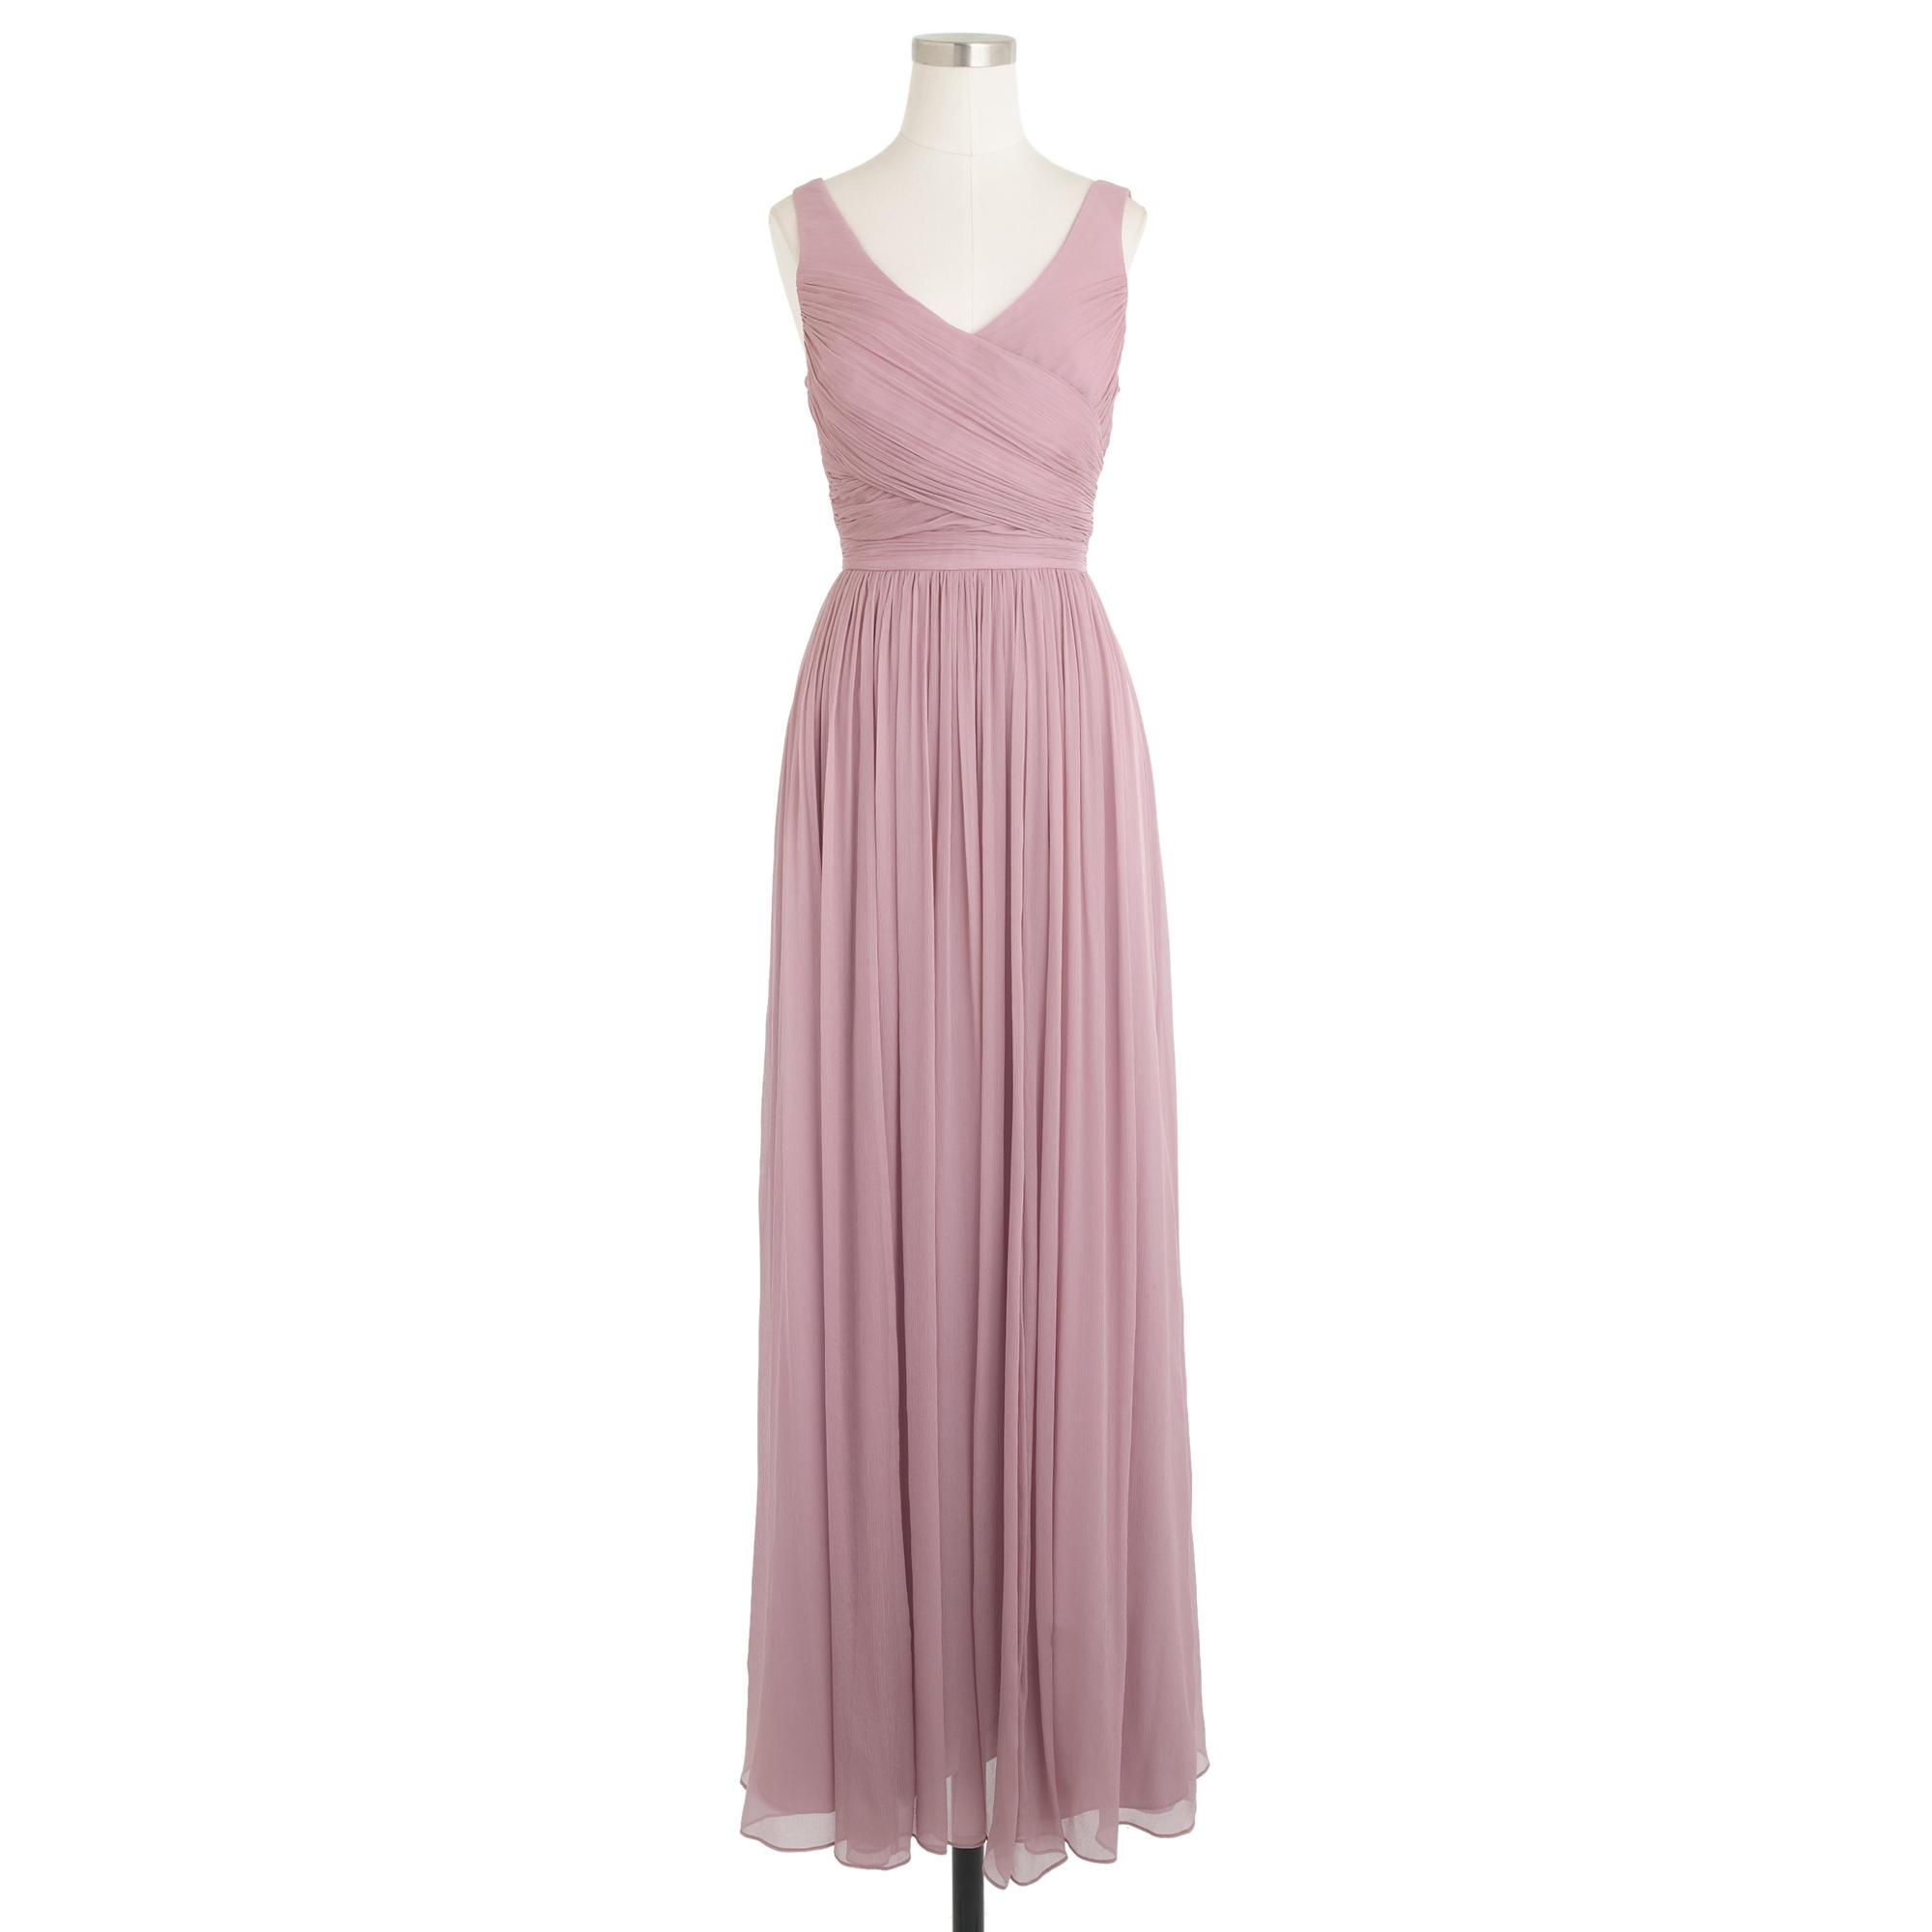 Pre owned bridesmaid dresses for sale gallery braidsmaid dress pre owned bridesmaid dresses uk vosoi pre owned bridesmaids dresses vosoi ombrellifo gallery ombrellifo Image collections